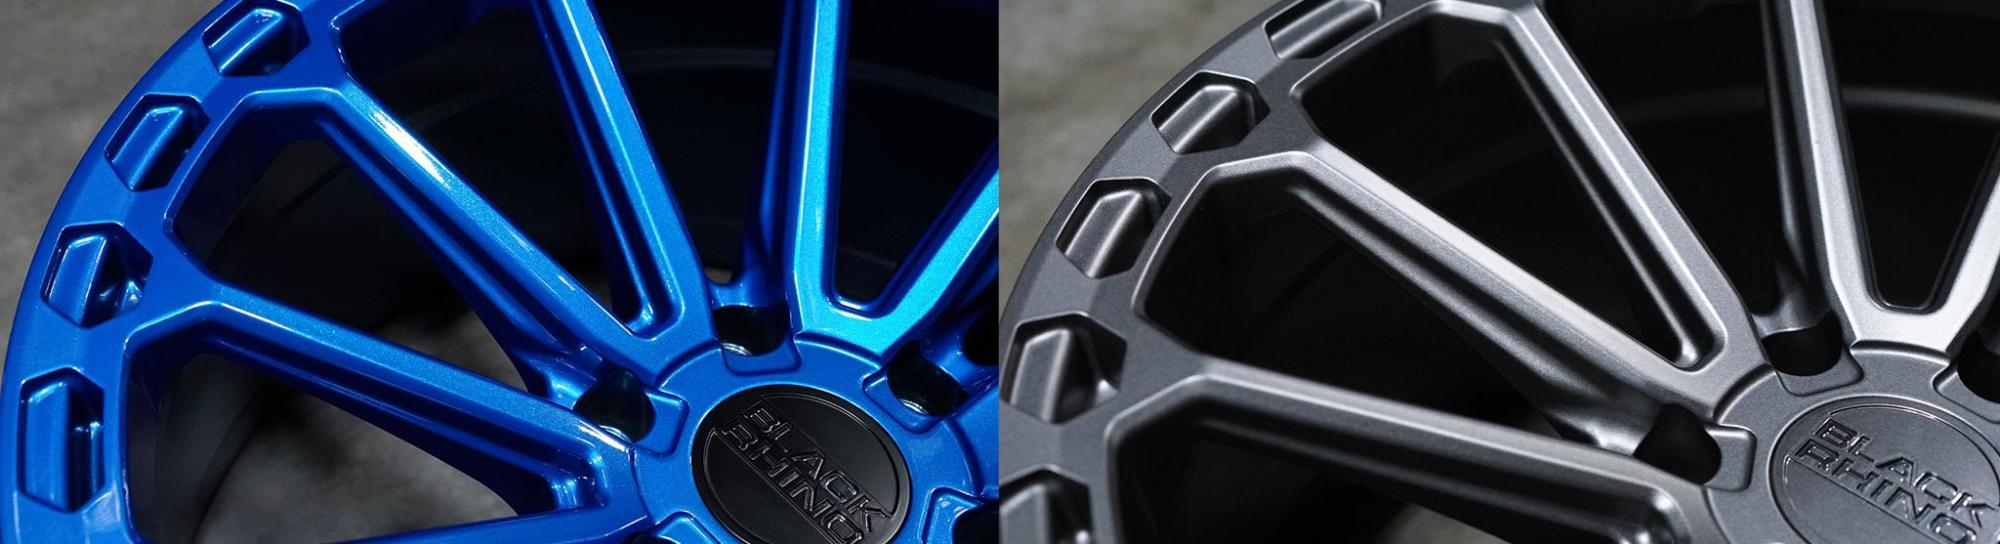 Introducing the Kaizen from Black Rhino Wheels